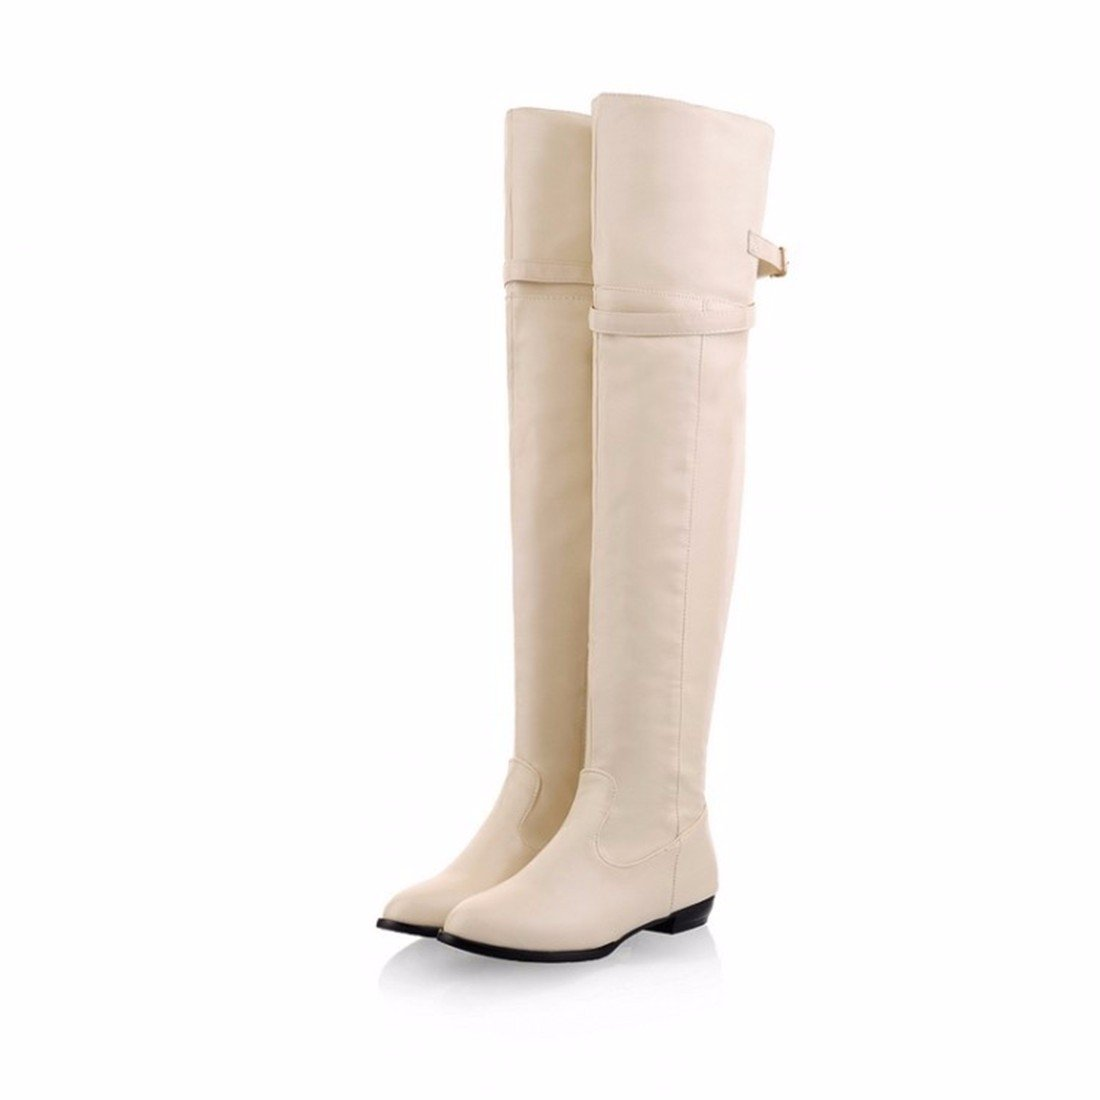 Over the Stiefel knee Stiefel the Stiefel Größe belt buckle flat Europe Knight Stiefel Beige 9c4382